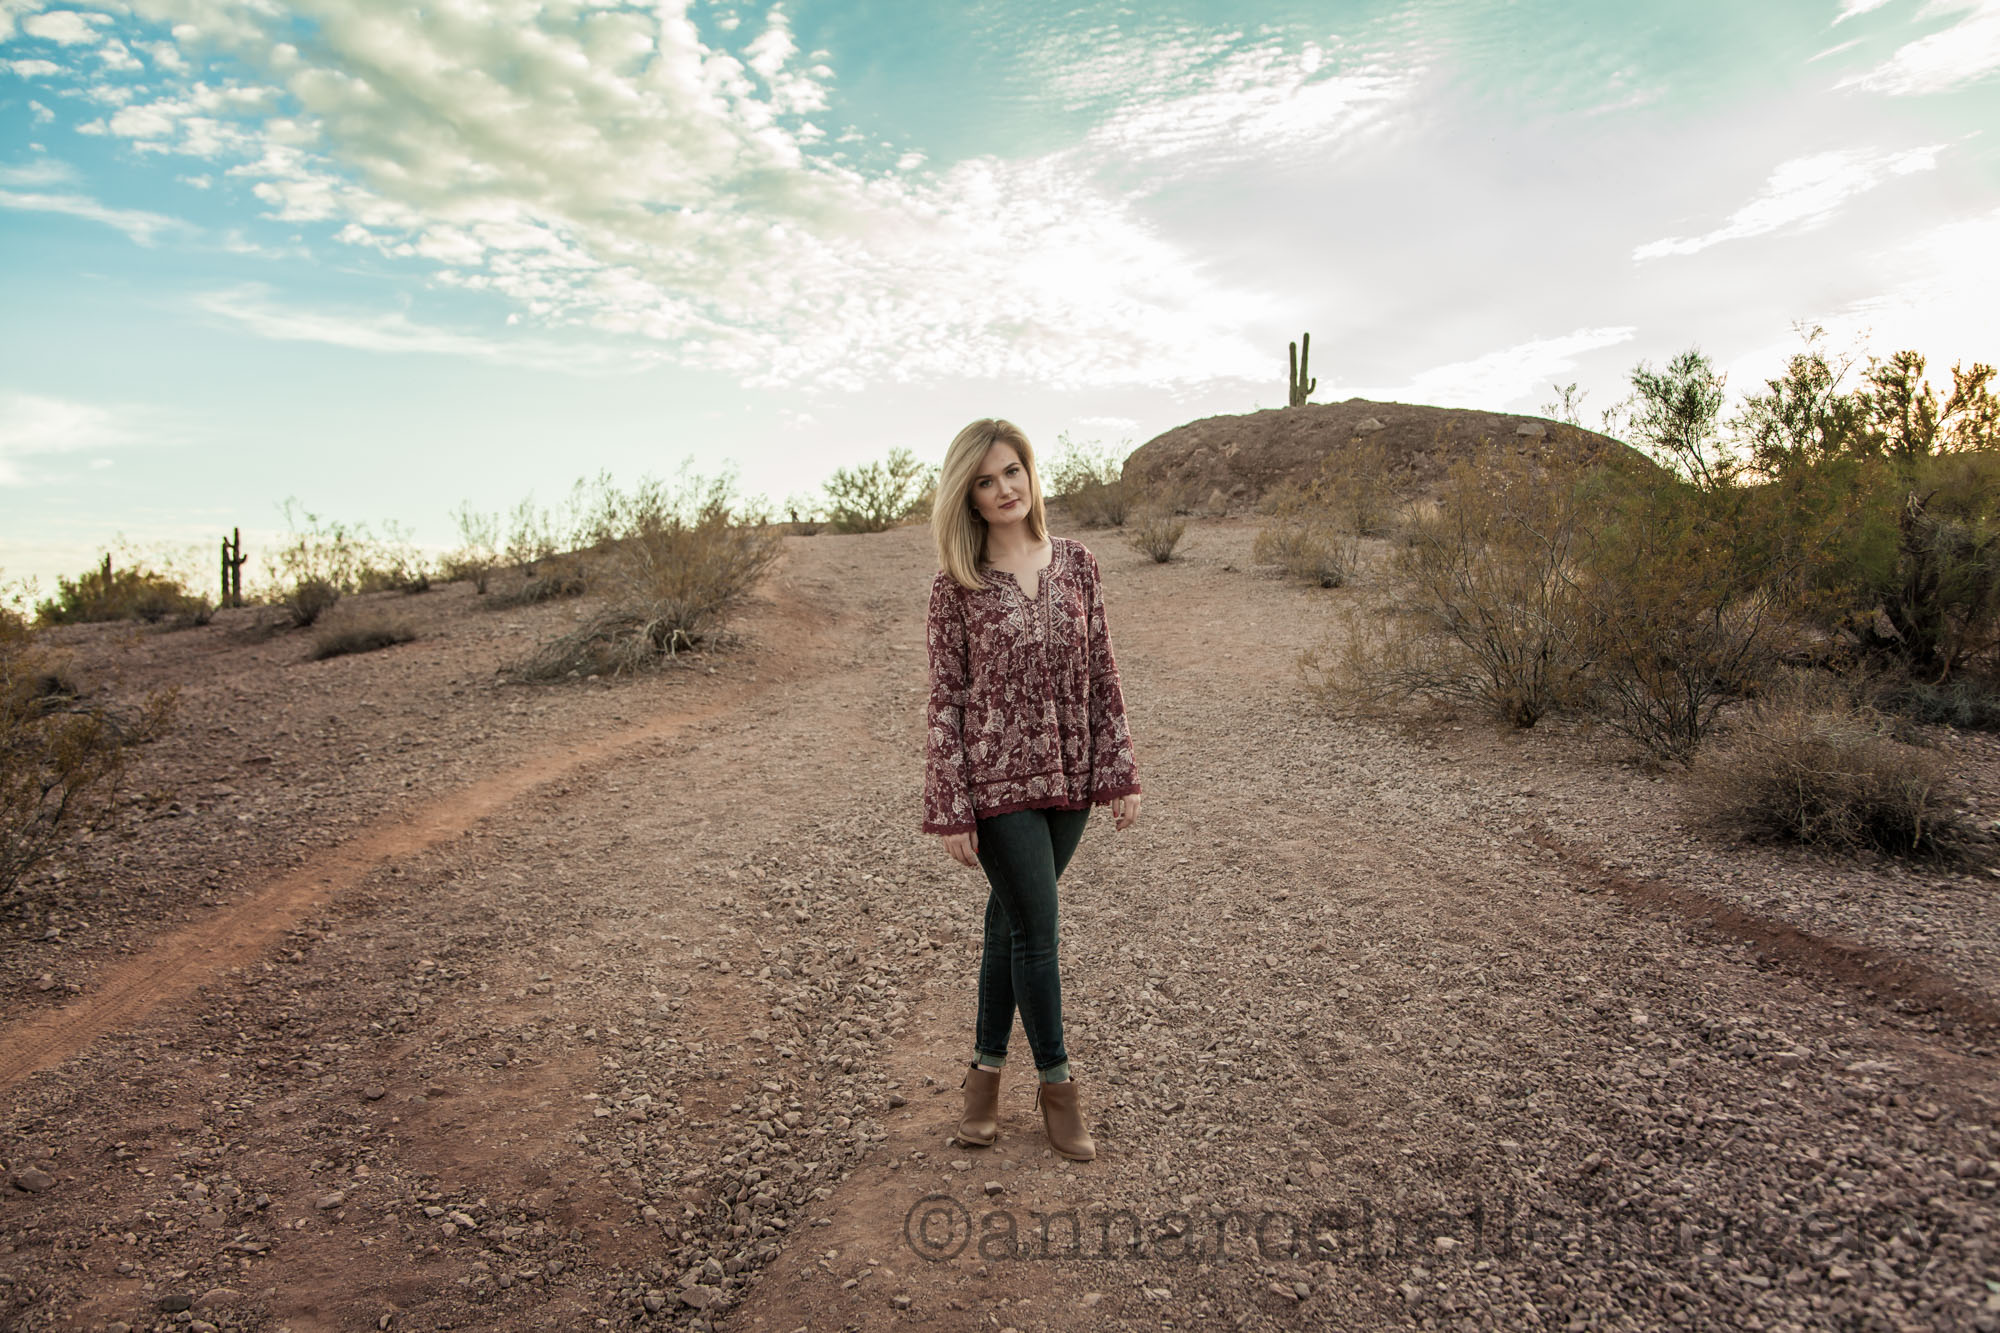 papago-phoenix-zoo-palm-portrait-senior-anna-rochelle-imagery-9.jpg